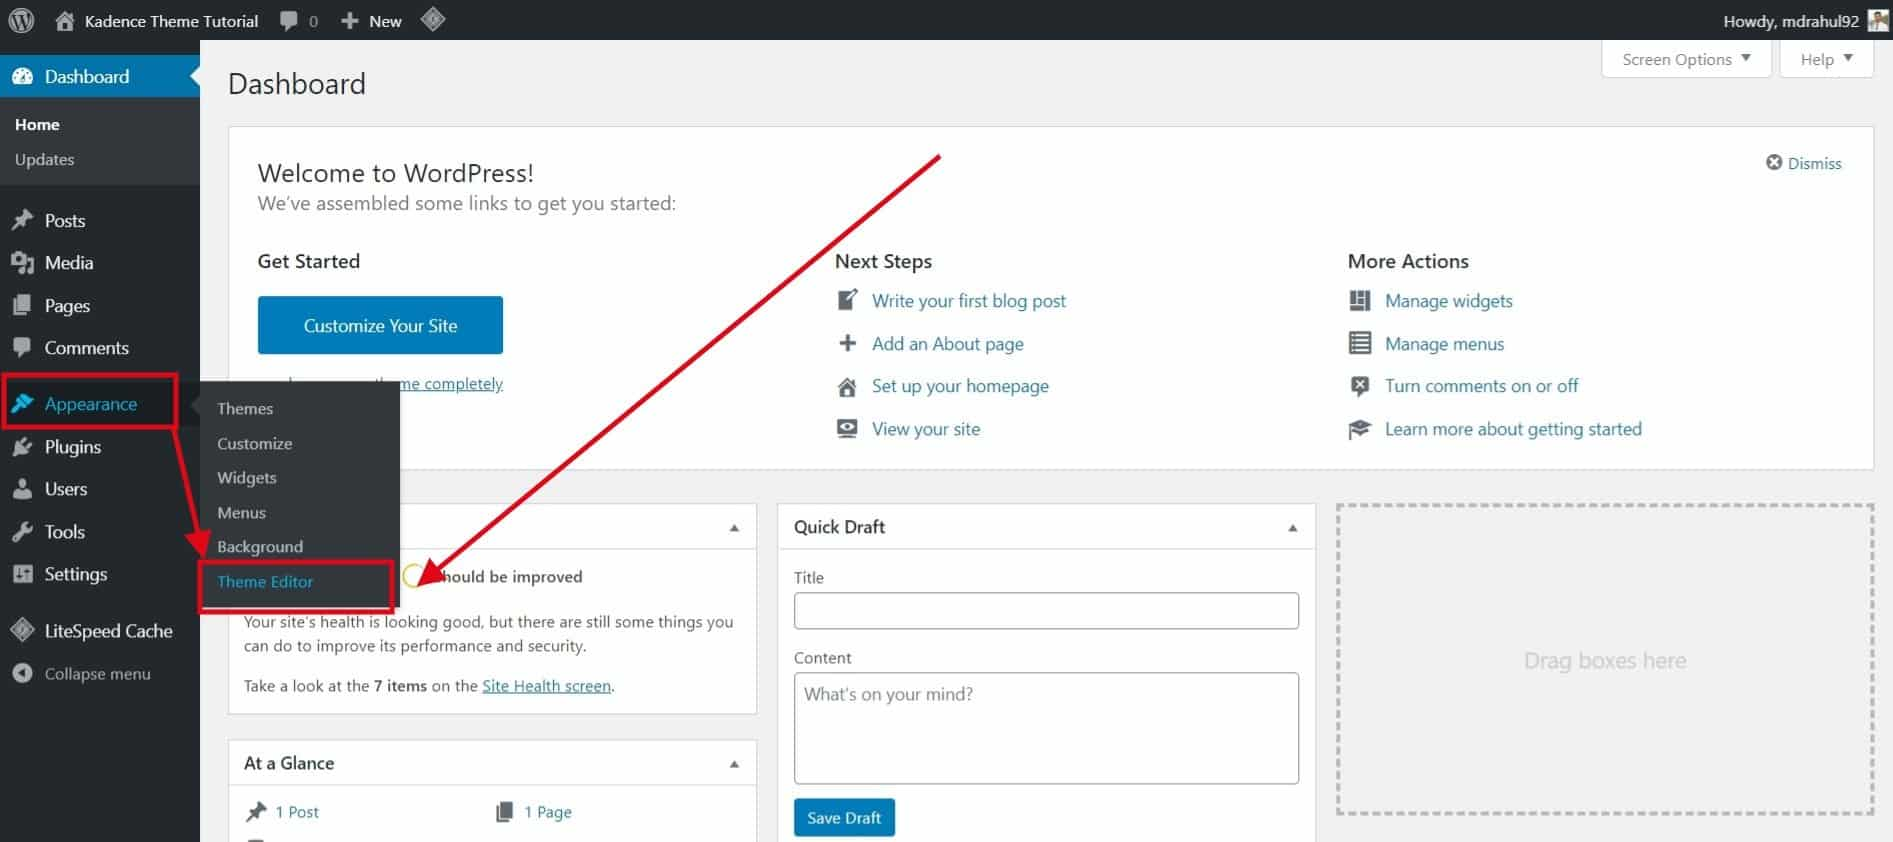 Copy Html Meta Tag Code From Search Console